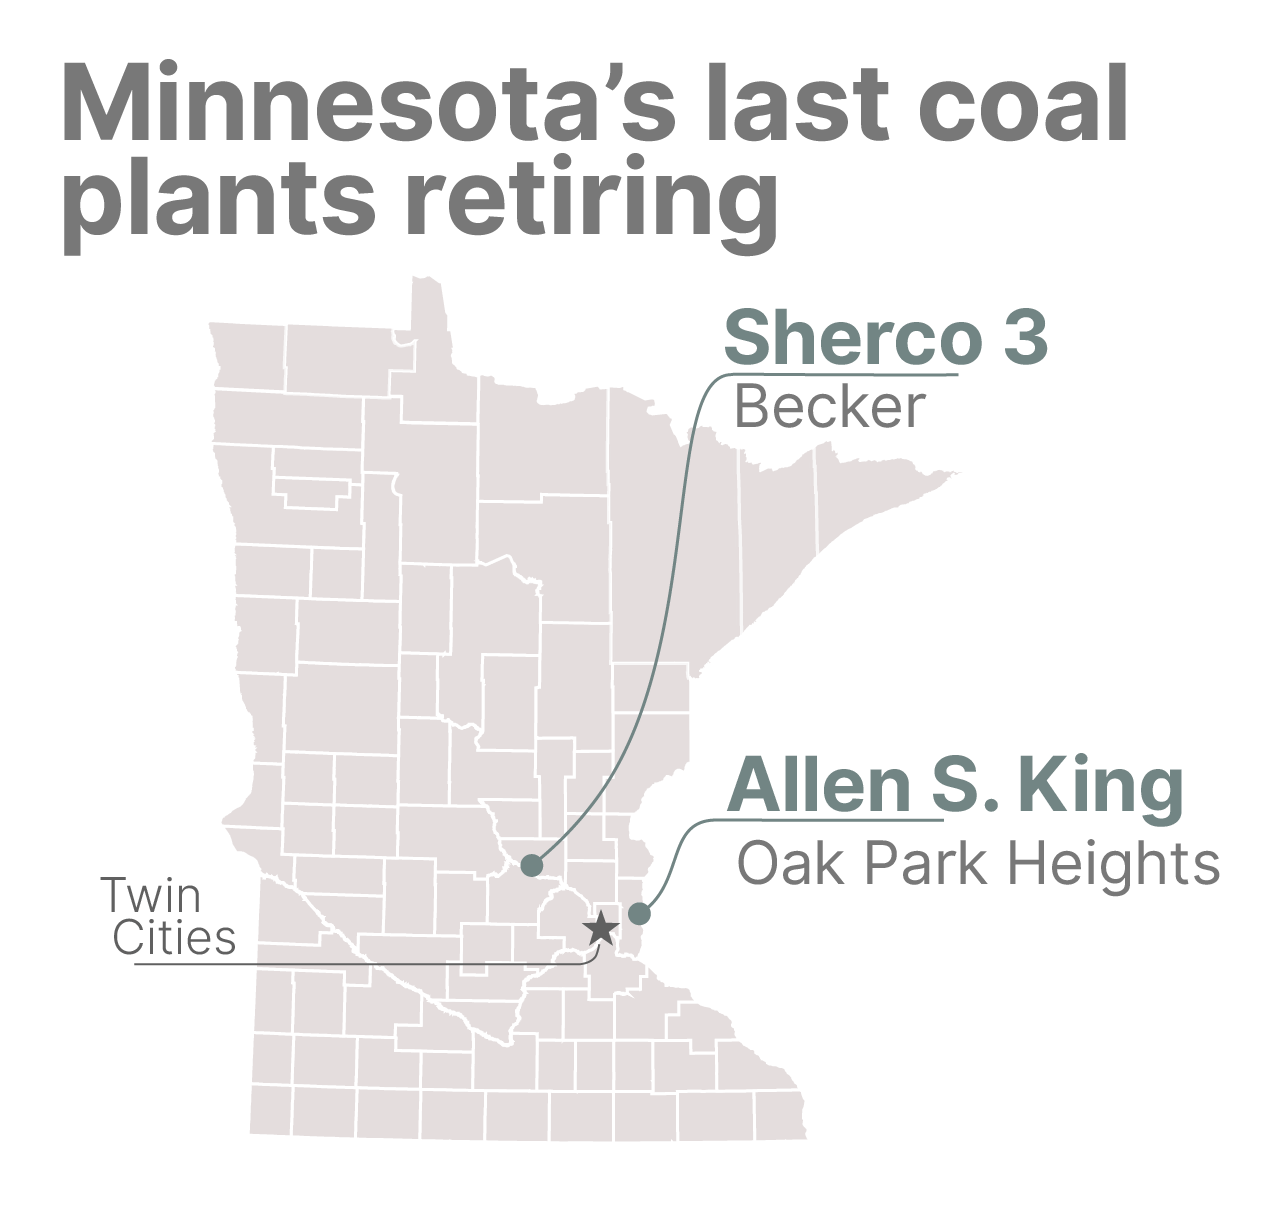 The last two coal plants in Minnesota are shut down.